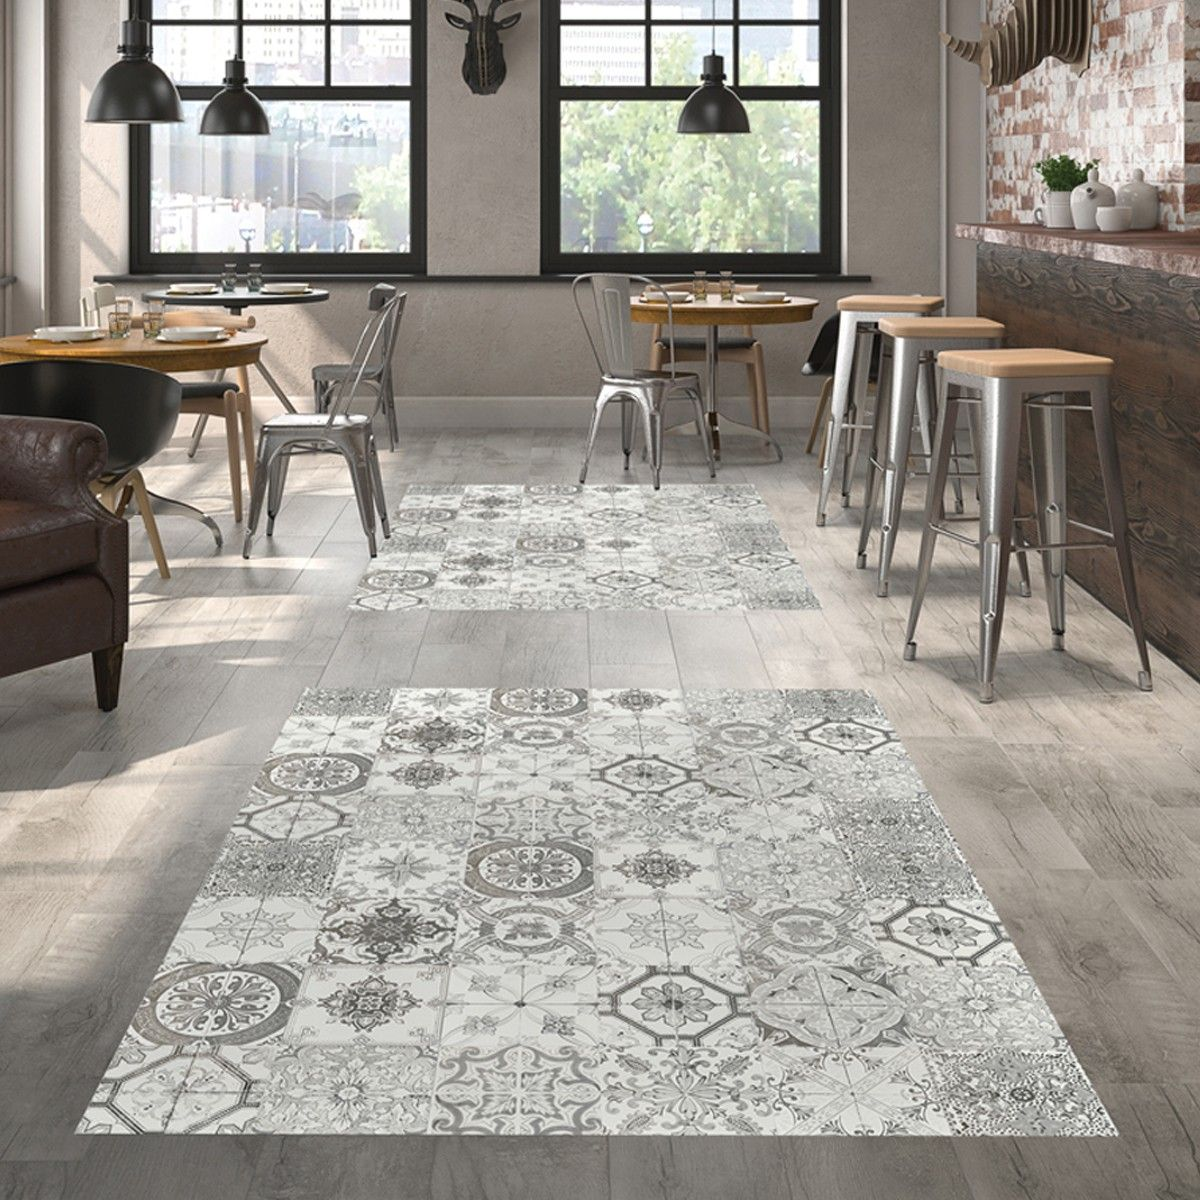 Nikea Matt Grey Porcelain Wall Floor Tiles Patterned Floor Tiles Ceramic Floor Tile Wall And Floor Tiles